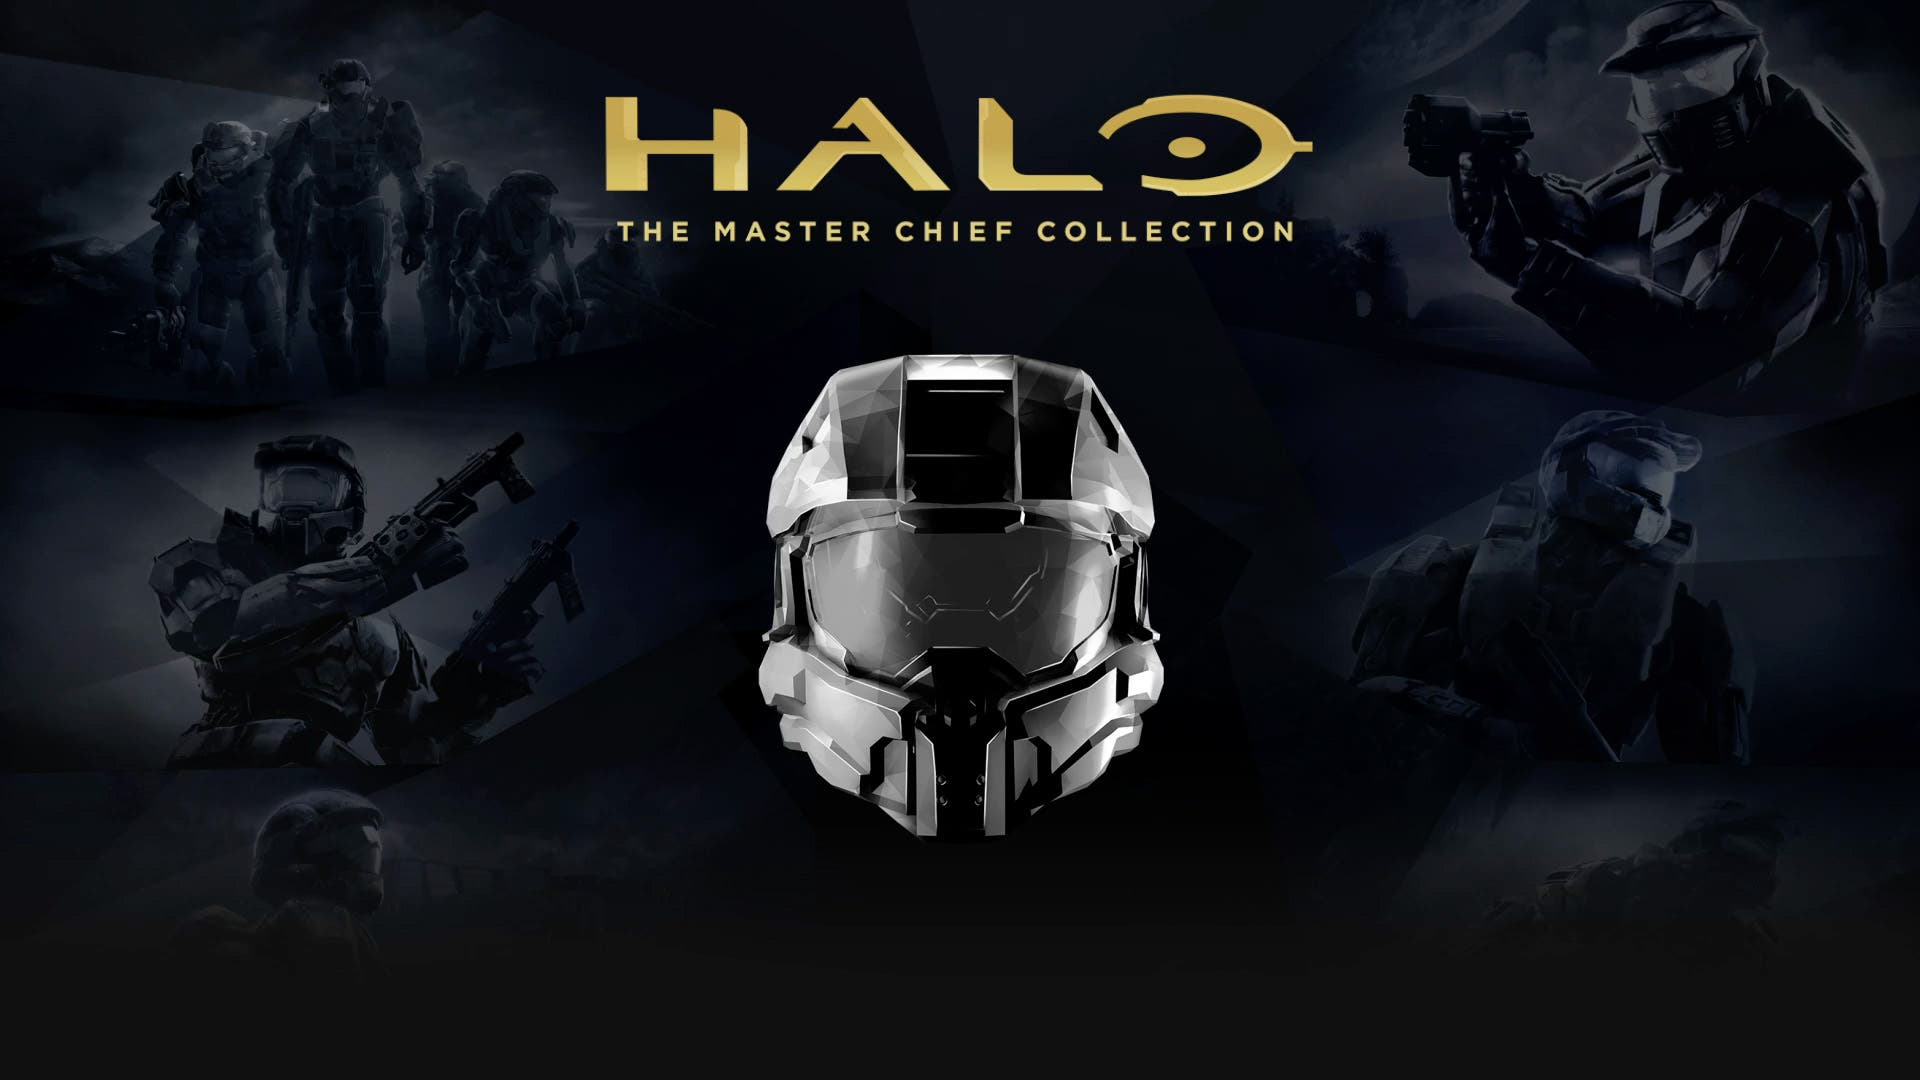 Vuelven las conjeturas de que Halo: The Master Chief Collection podría llegar a Nintendo Switch 17